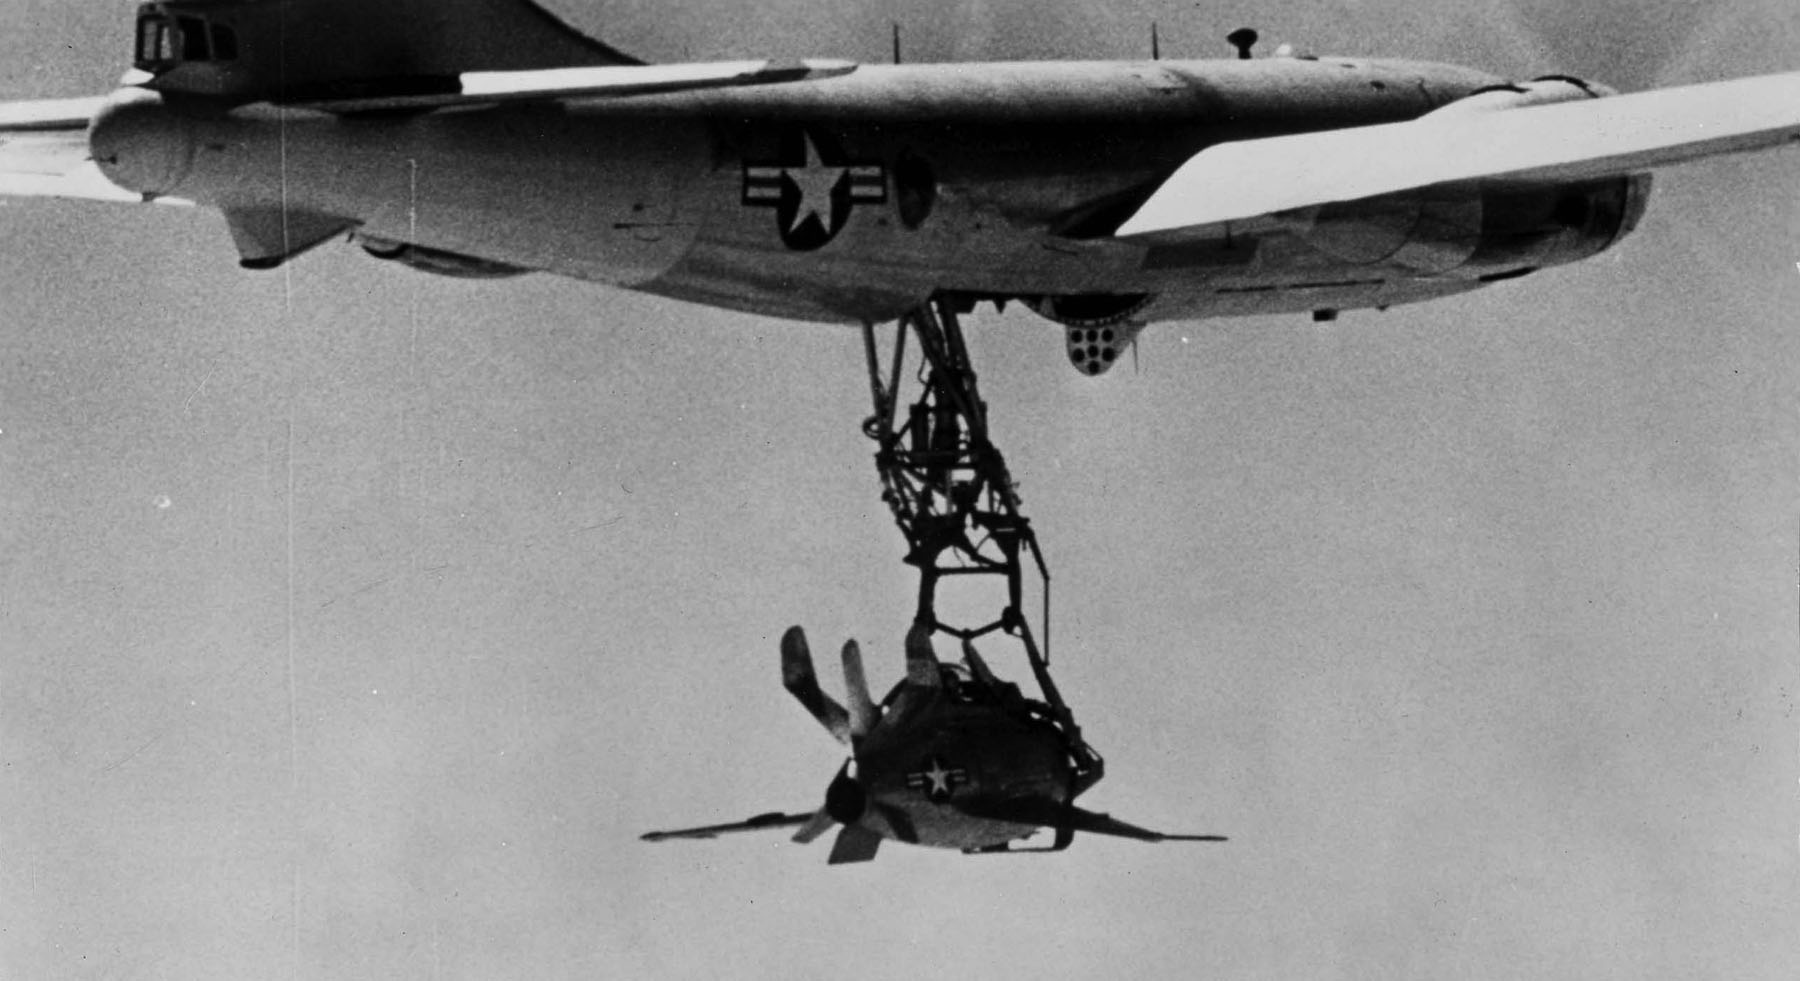 Black-and-white photograph shows diminutive jet fighter suspended from a large aircraft in flight, through a trapeze.